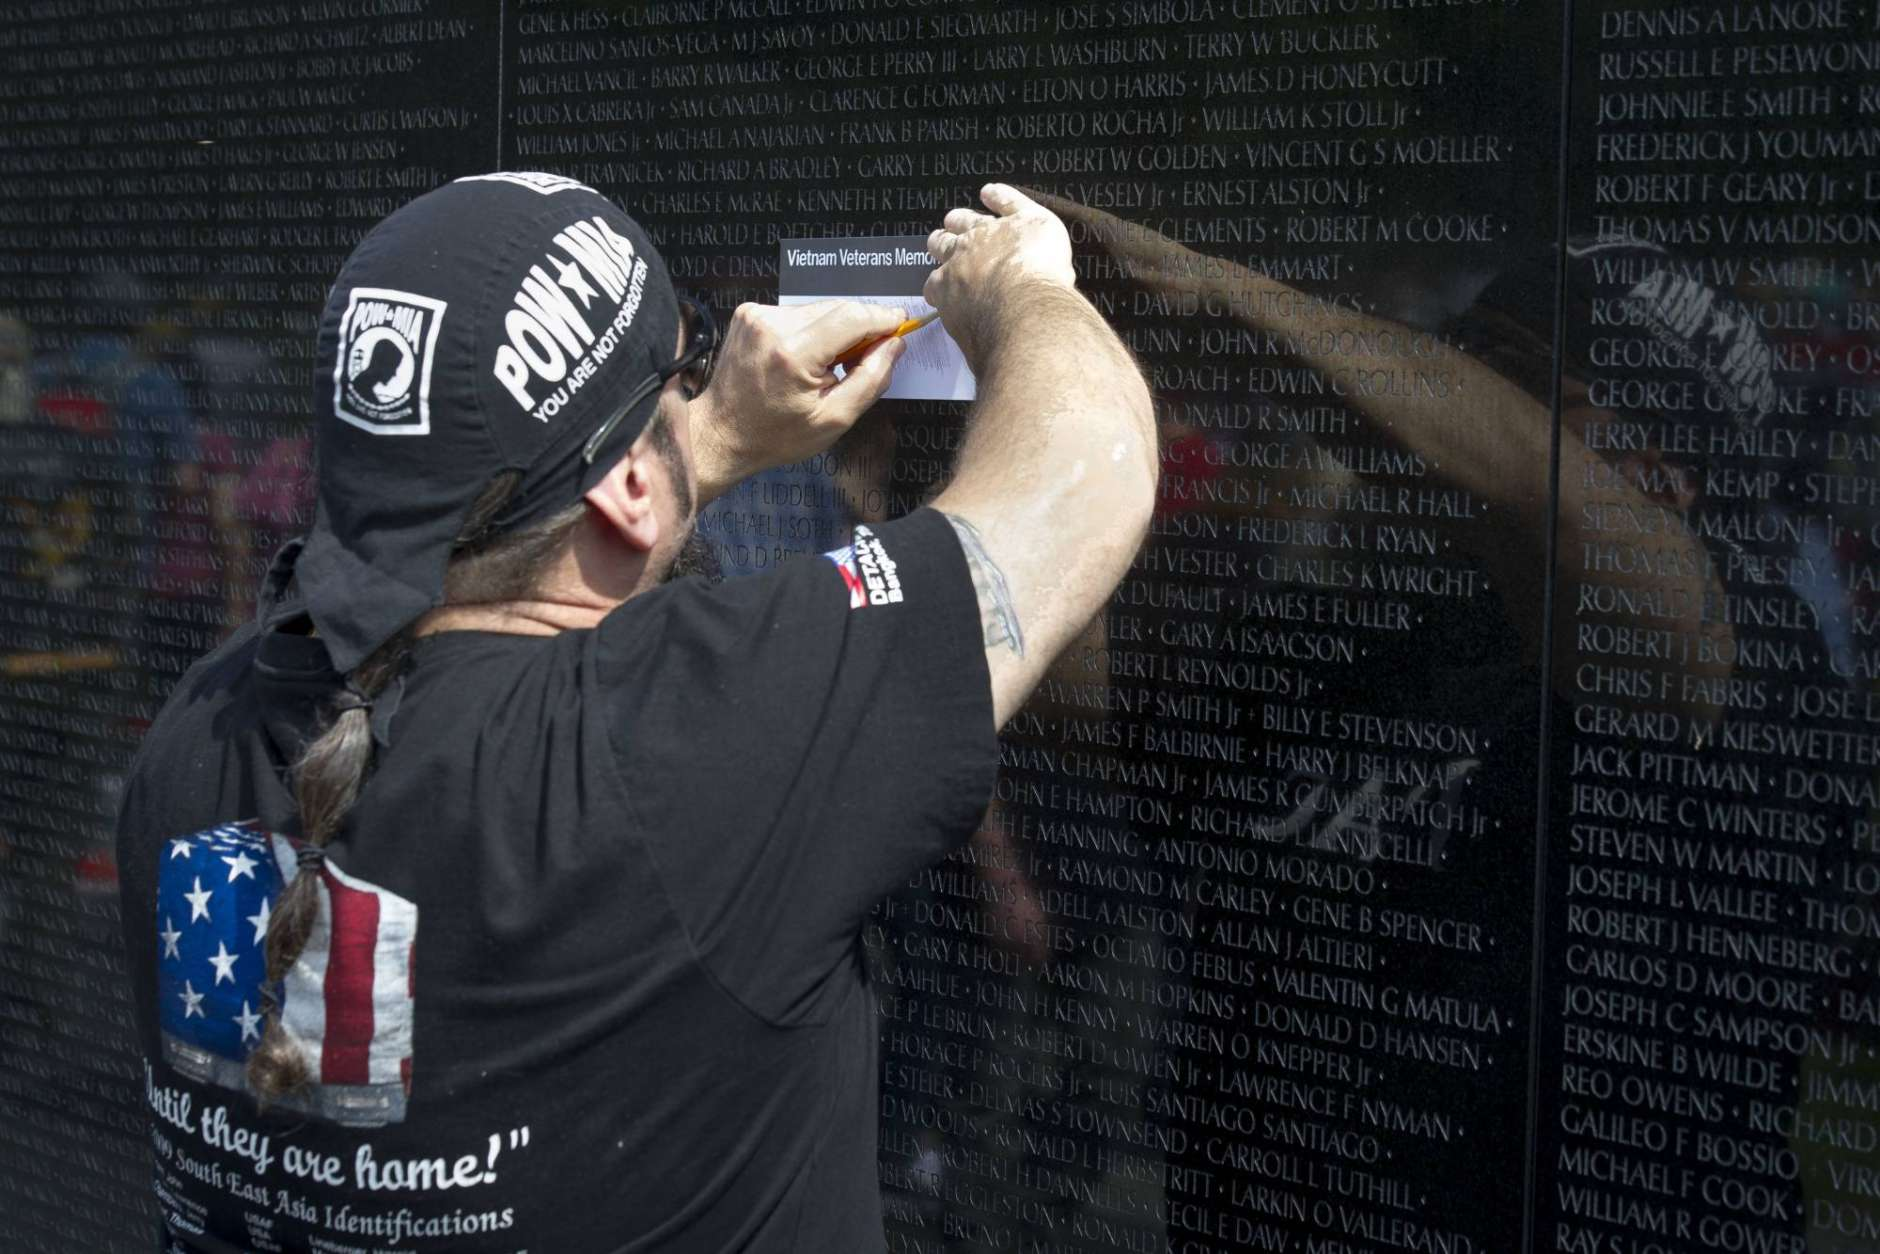 A motorcyclists transfer a name of a deceased soldier at the Vietnam Veterans Memorial during the 30th anniversary of the Rolling Thunder 'Ride for Freedom' demonstration in Washington, Sunday, May 28, 2017. Rolling Thunder seeks to bring full accountability for all U.S. prisoners of war and missing in action (POW/MIA) soldiers. (AP Photo/Cliff Owen)